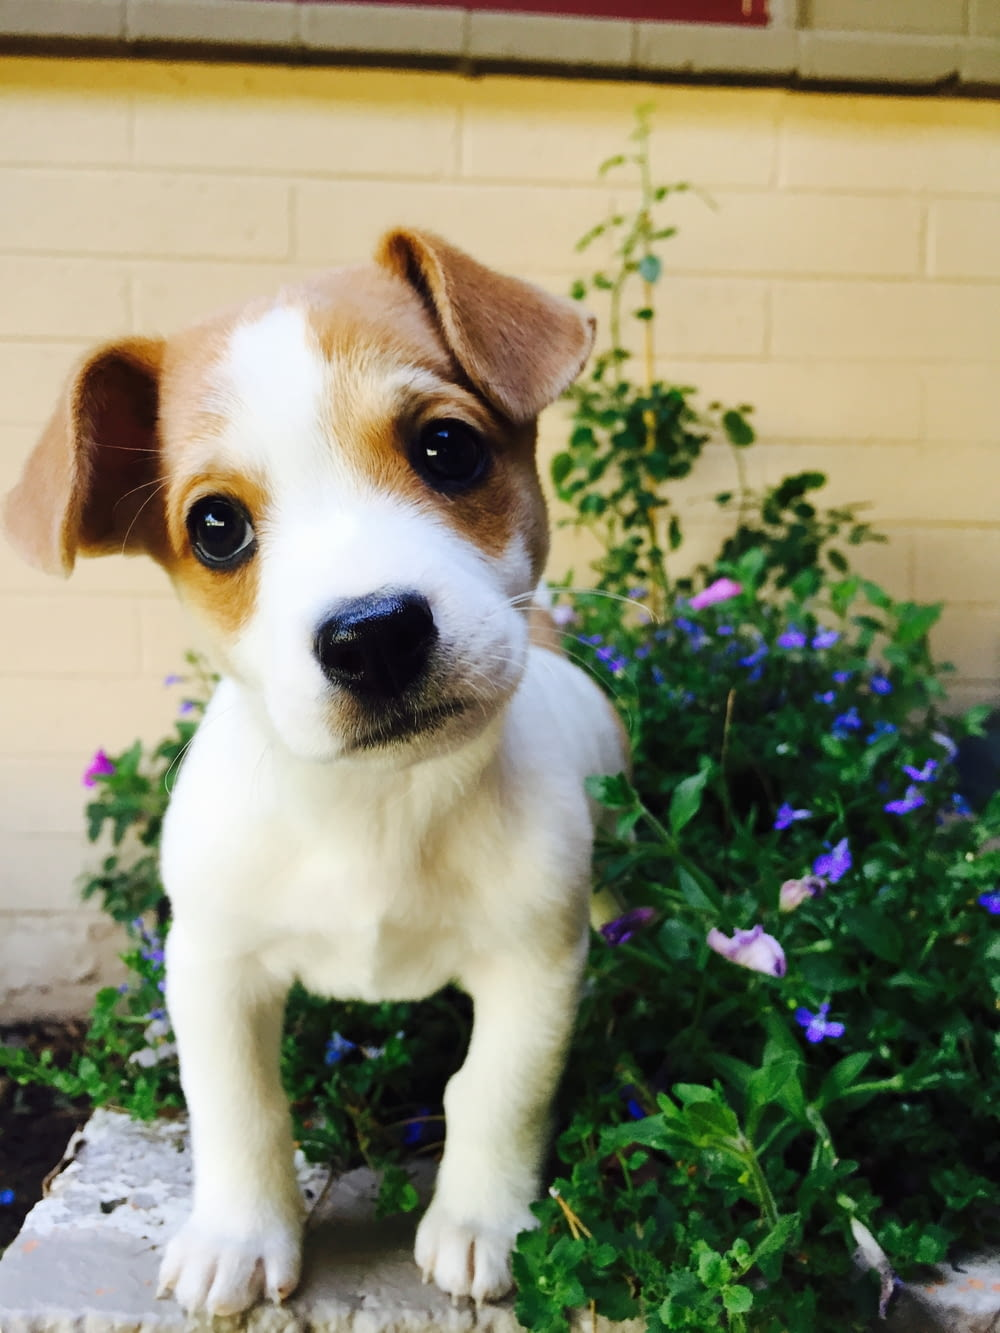 white and brown short coated puppy on green grass field